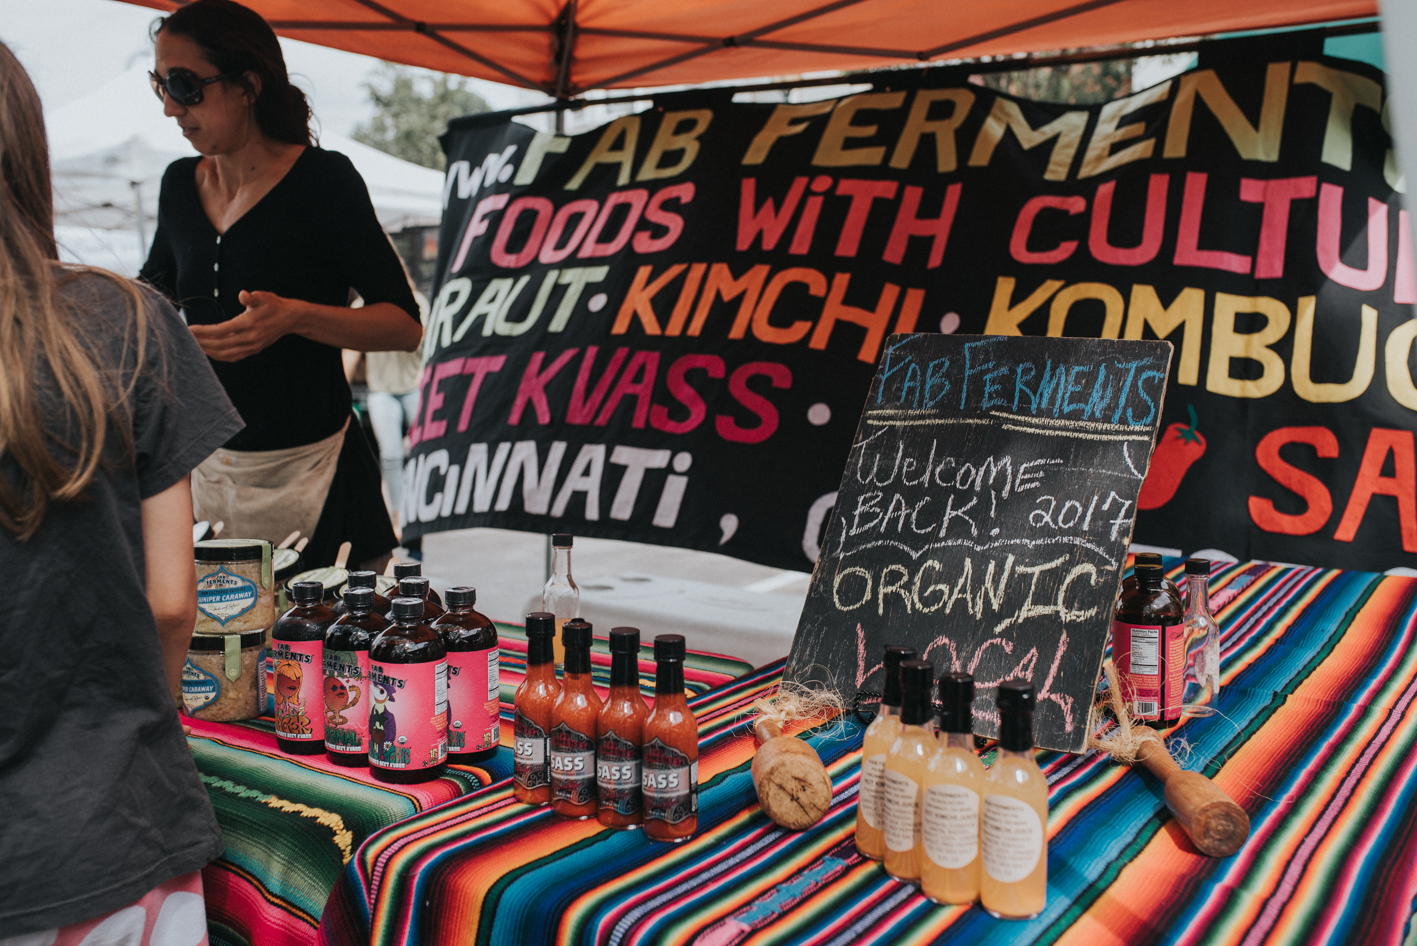 The Hyde Park Farmers' Market takes place at Hyde Park Square every Sunday from 9:30am to 1:30pm (until October 29th). There, you'll find both organic and conventionally-grown produce from small, family-run farms in the Cincinnati area. ADDRESS: 2700 Erie Ave (45208) / Image: Brianna Long // Published 6.1.17